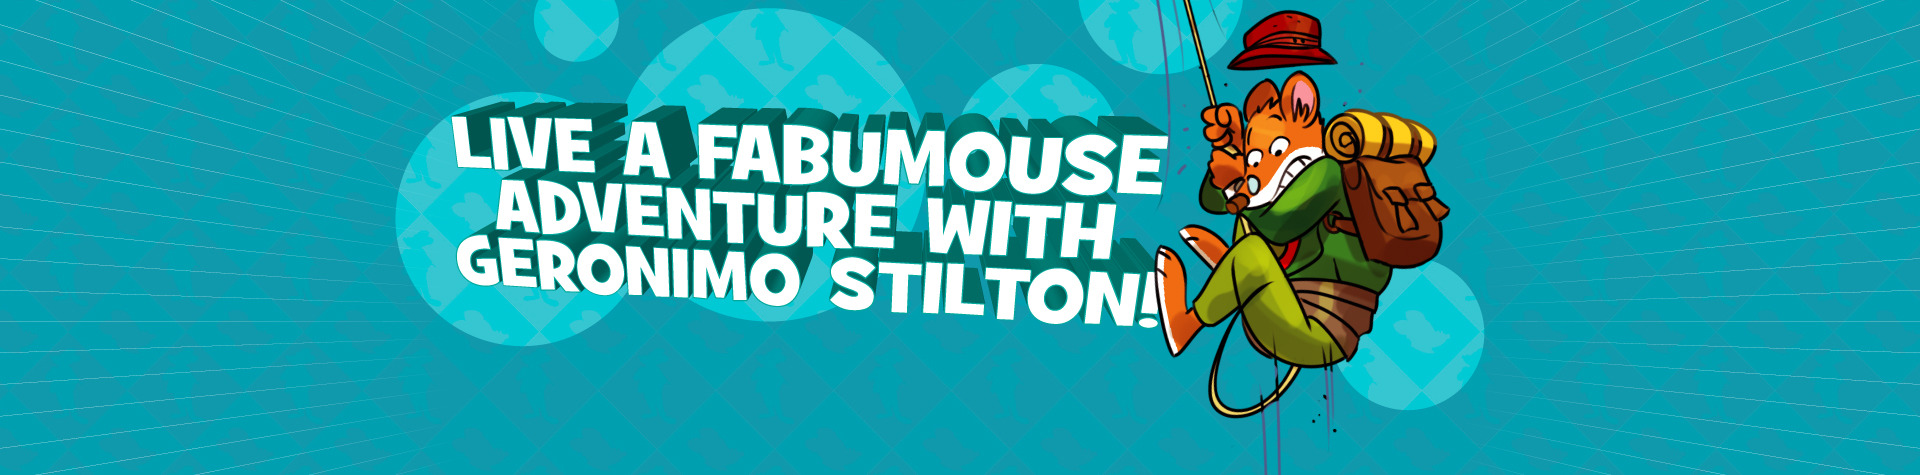 Live an adventure with Geronimo Stilton!